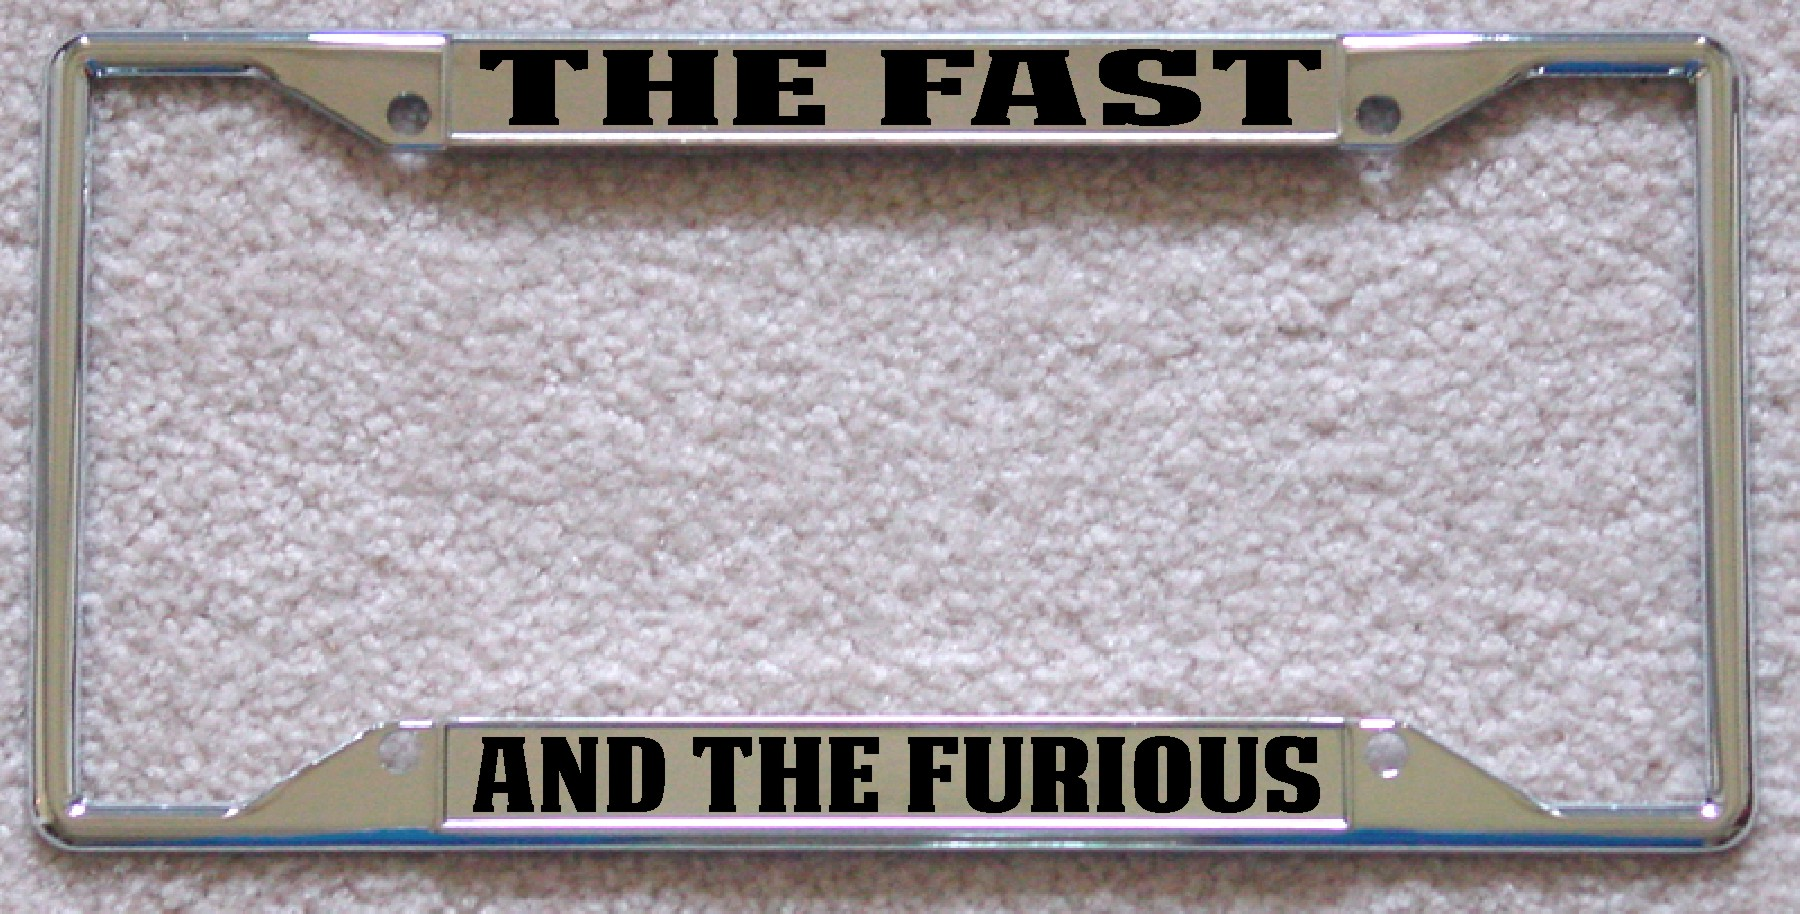 Frame The Fast and The Furious